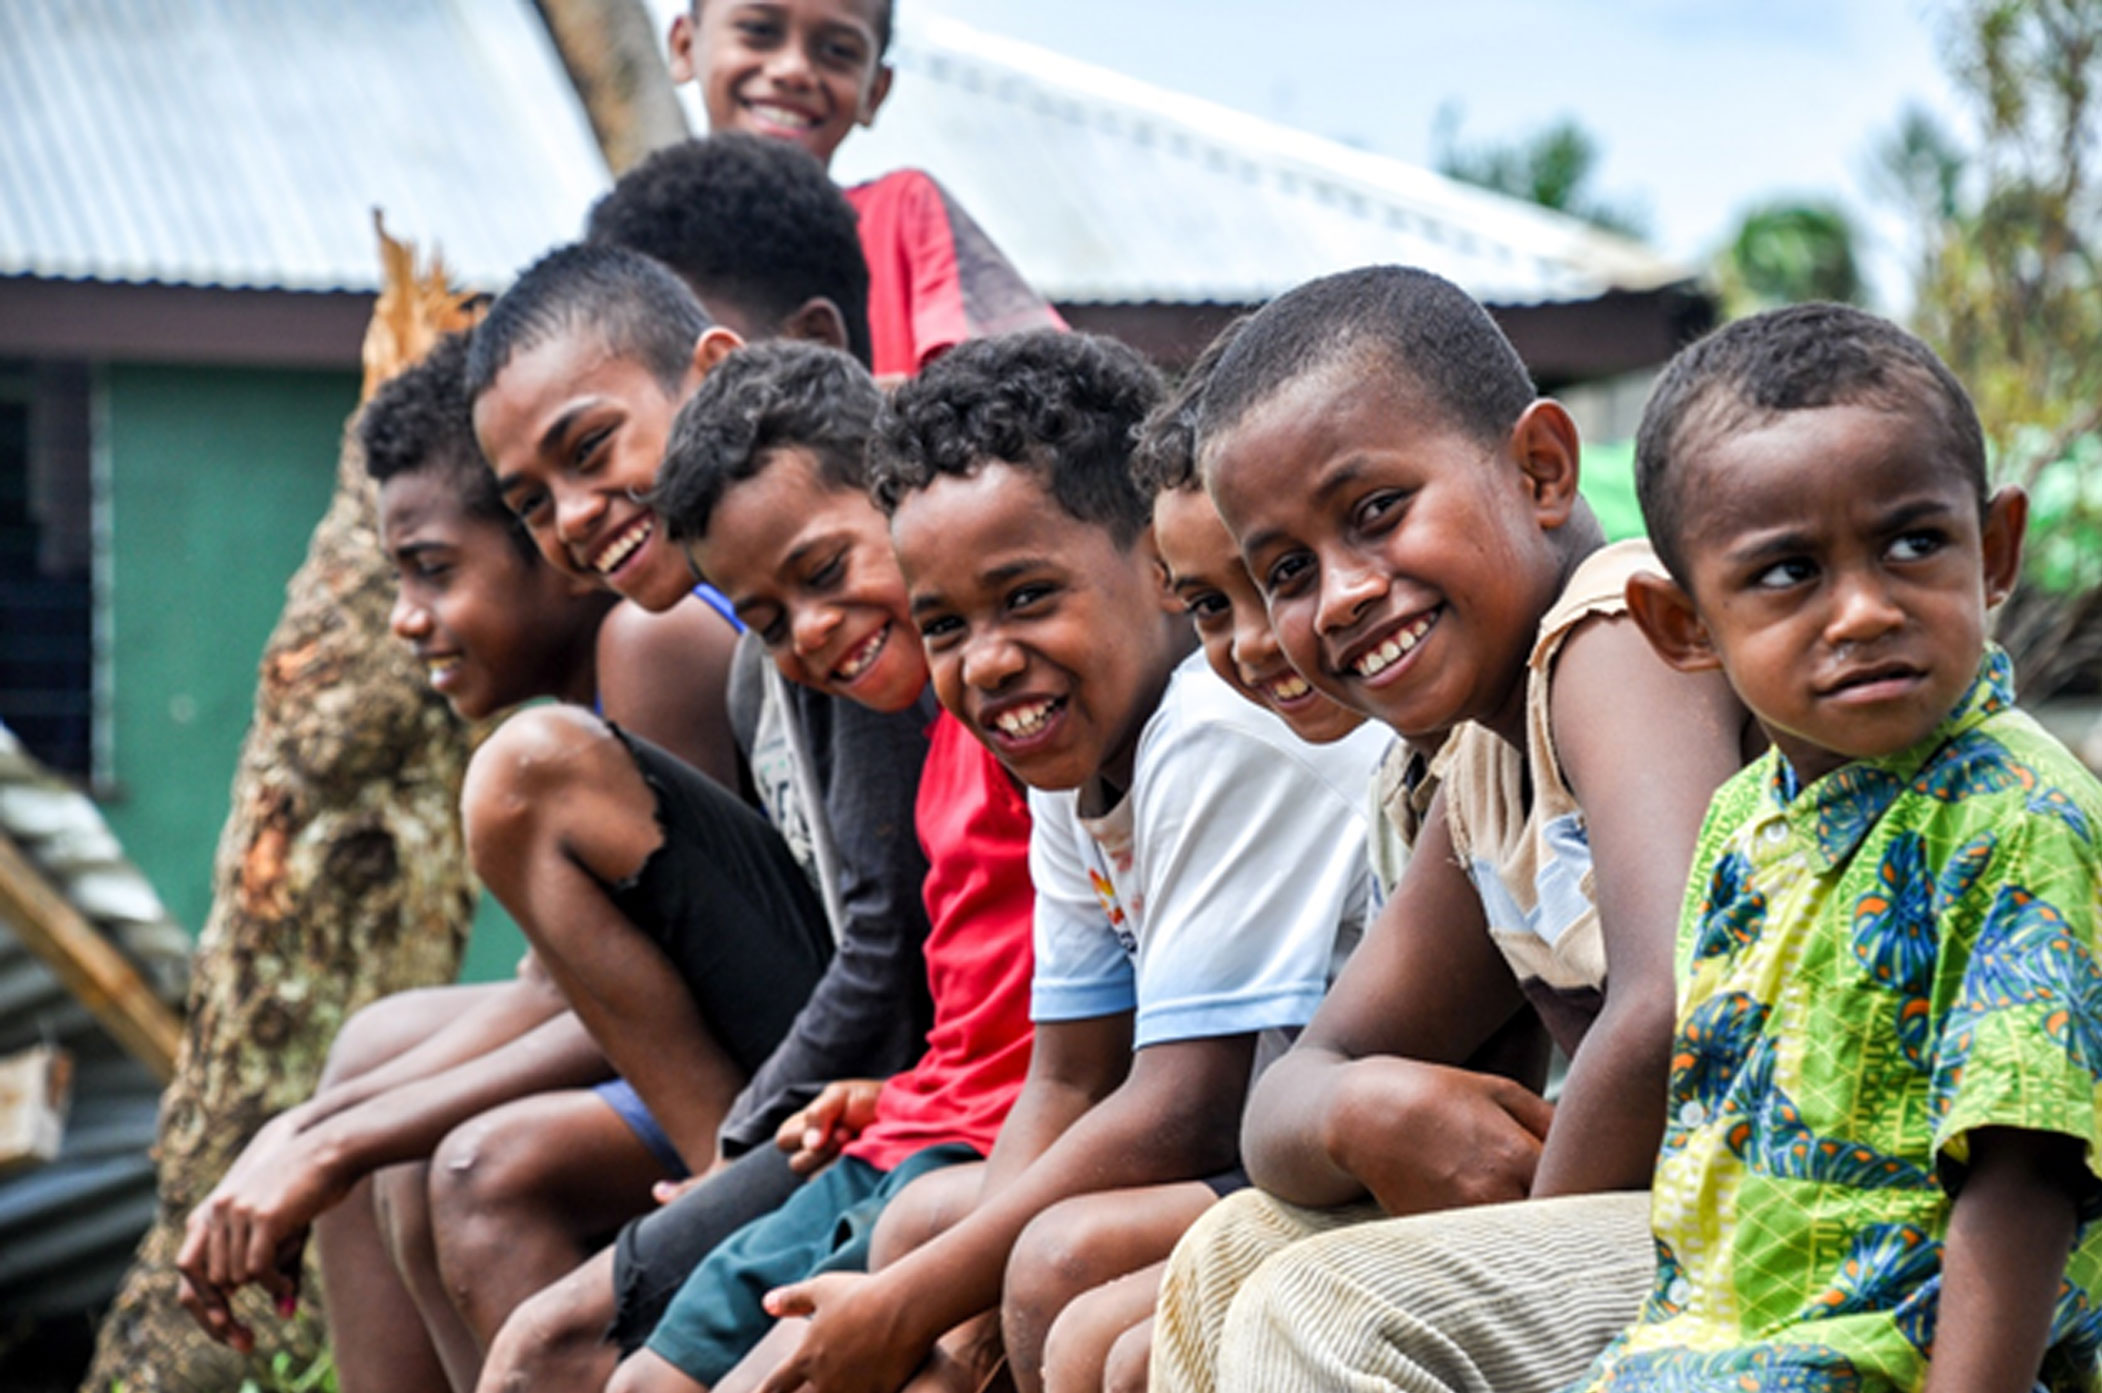 Children and Youth in Emergencies